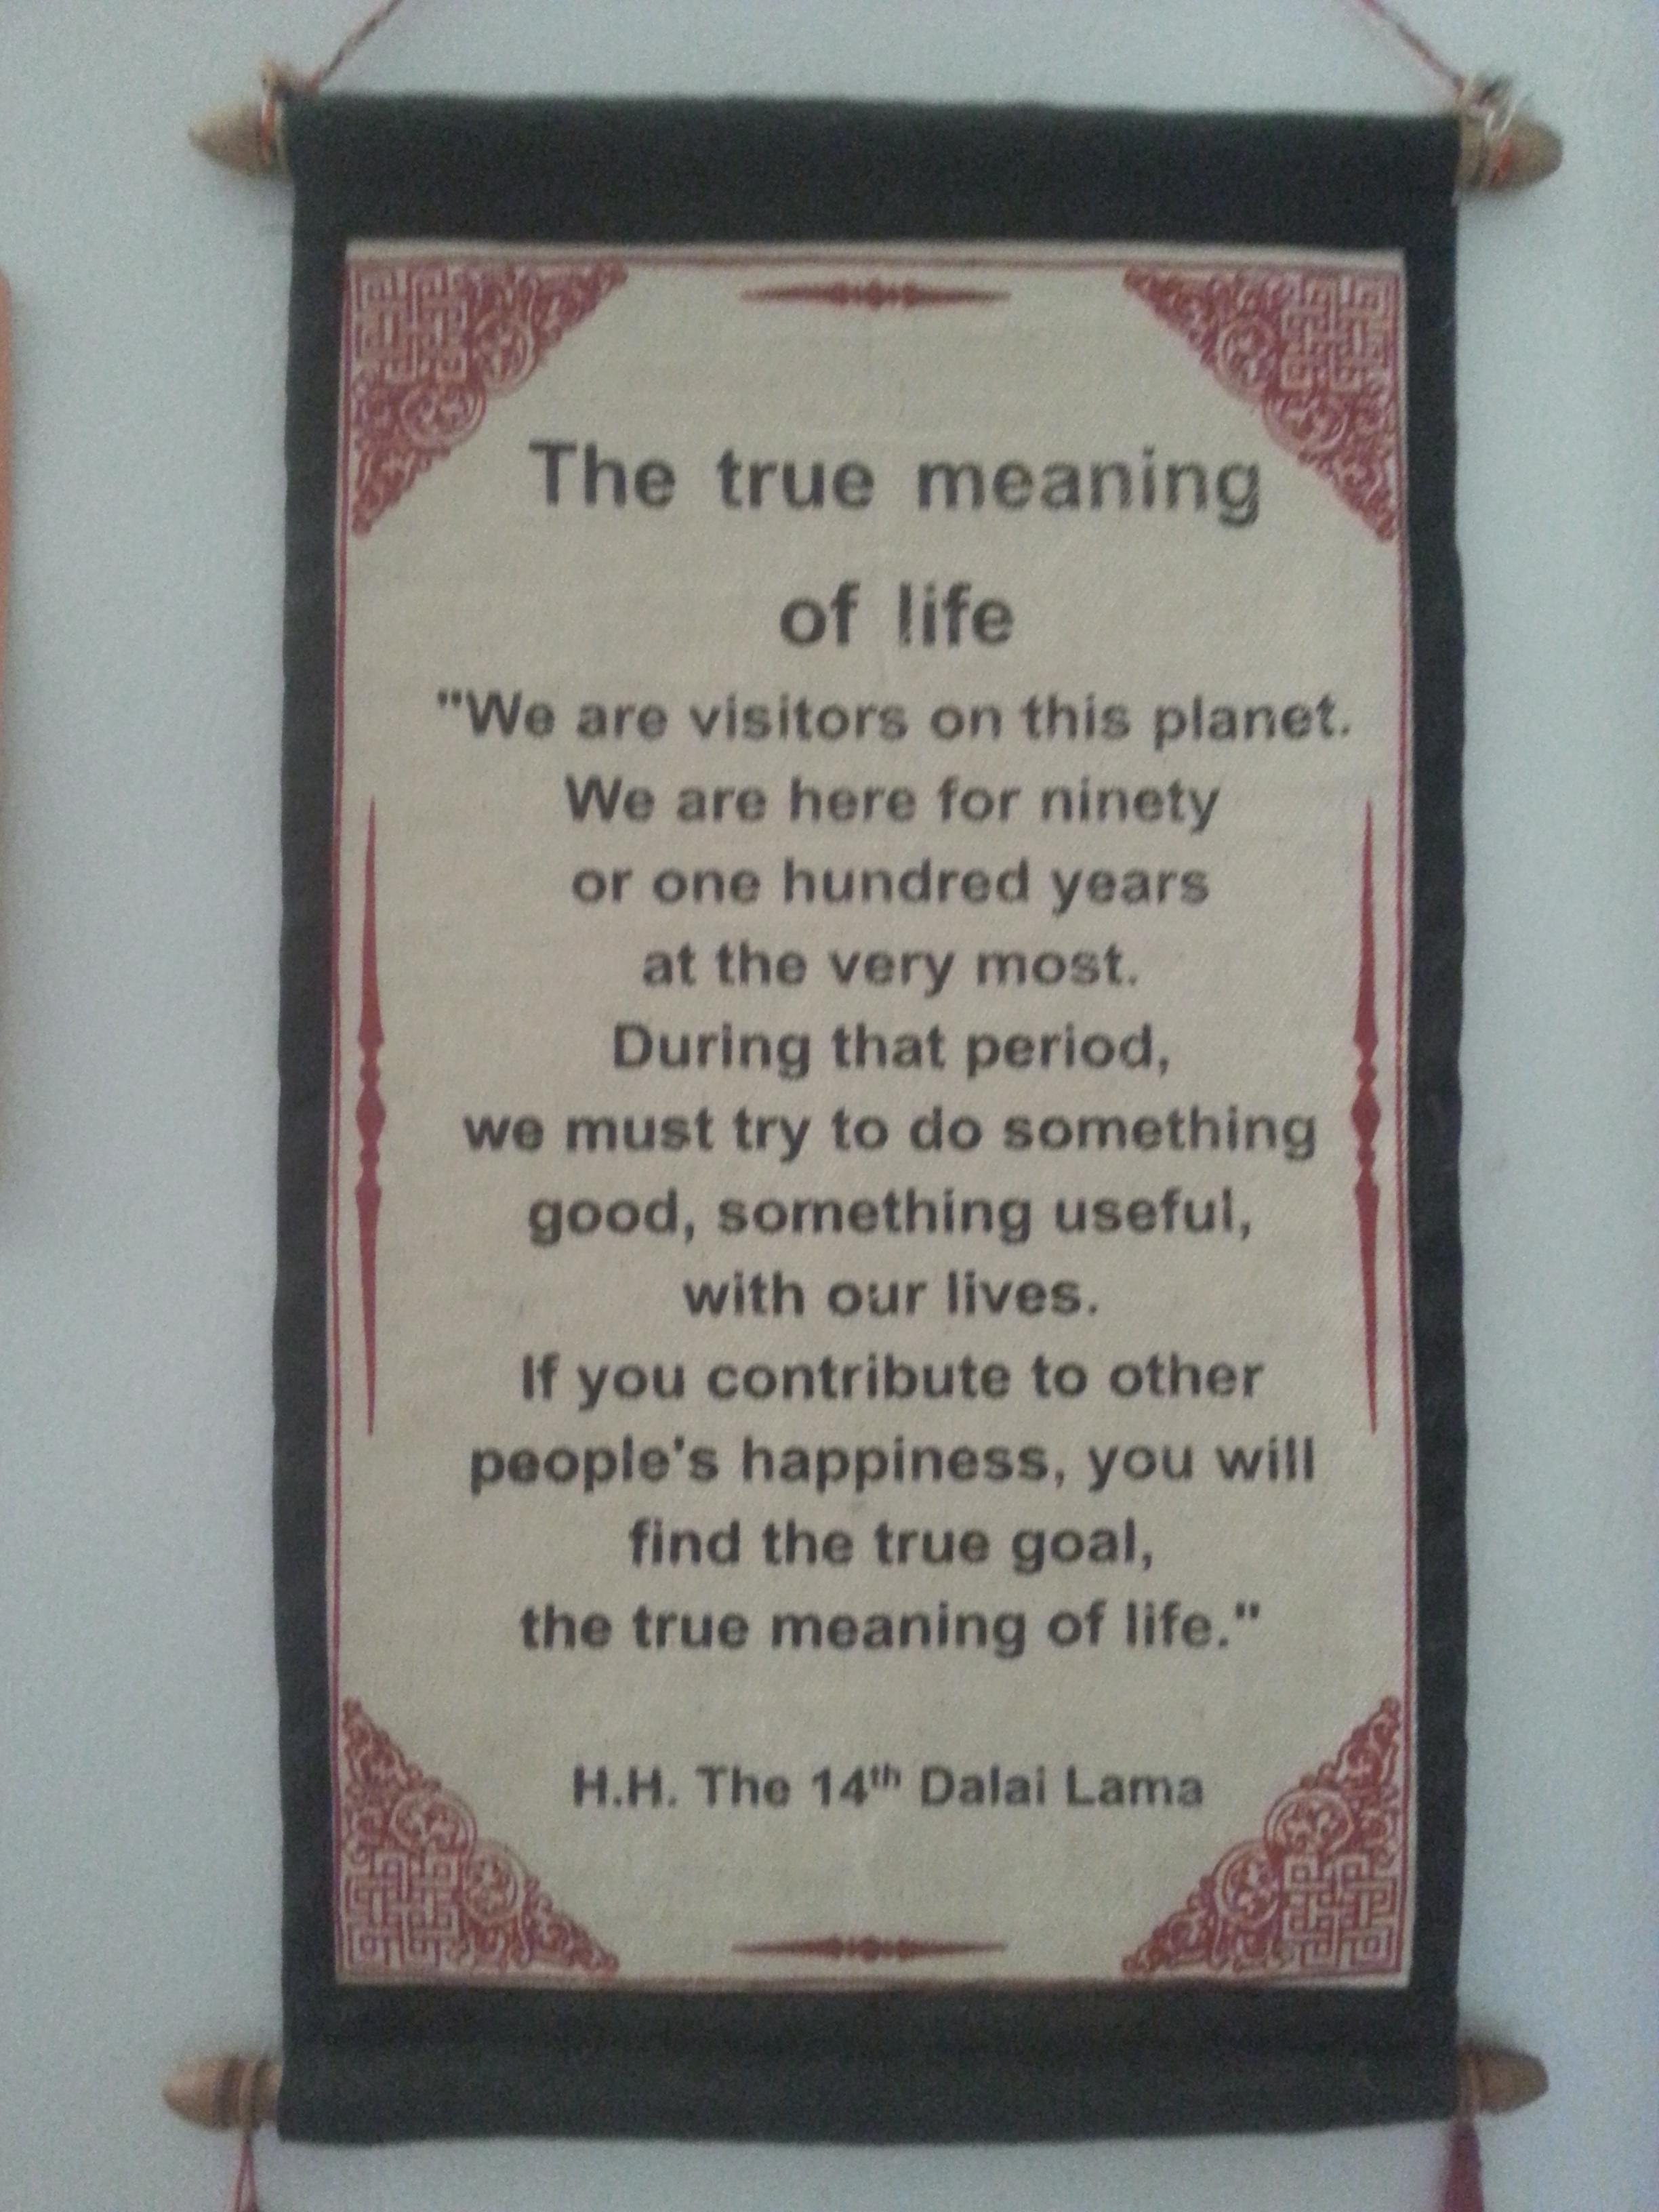 The true meaning of life- hh the 14th dalai lama